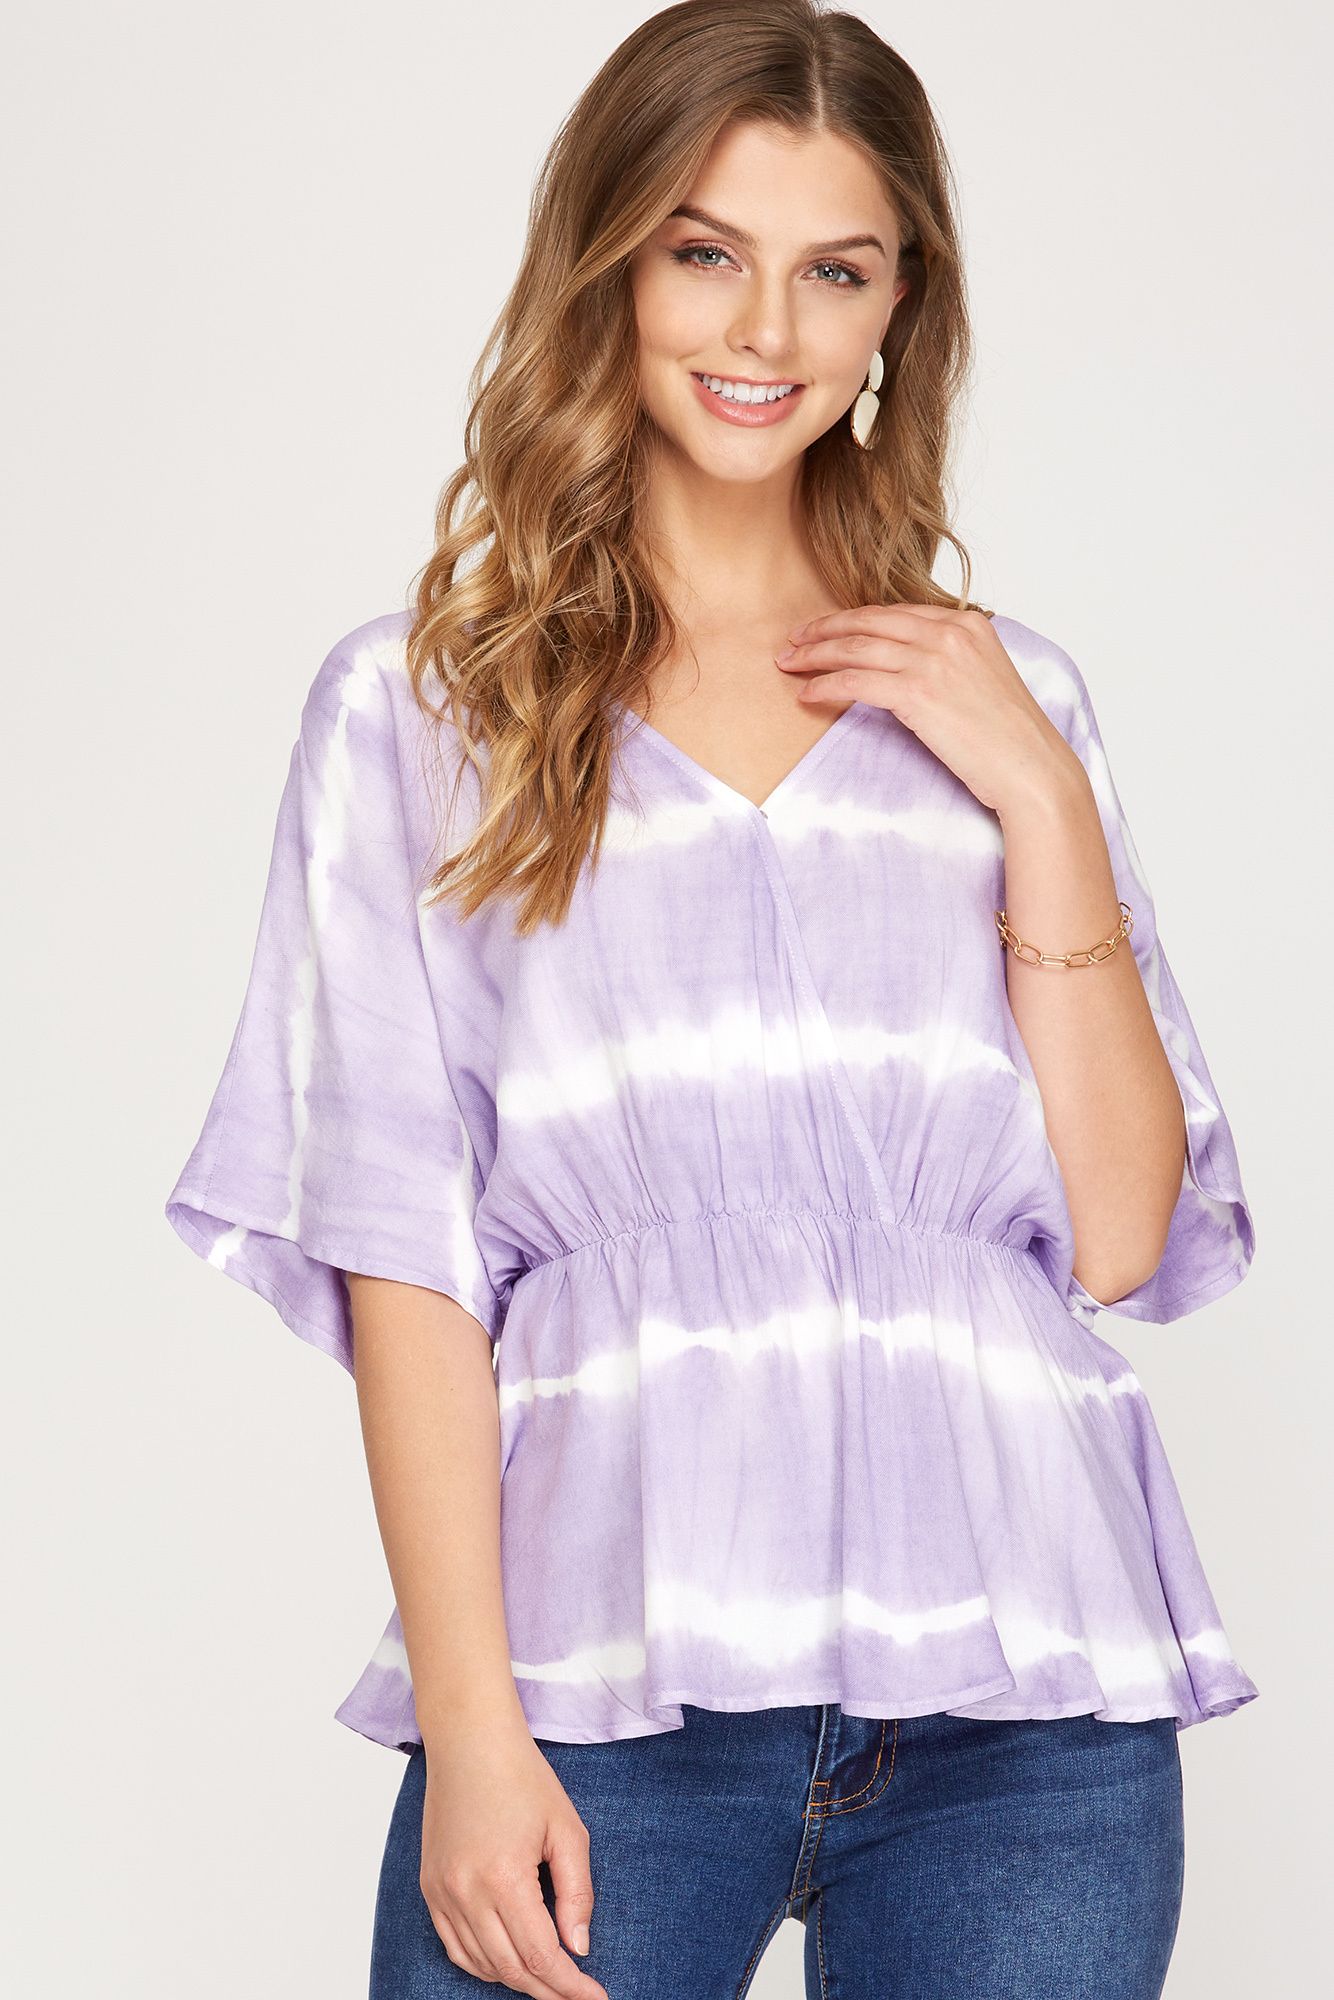 New Found Beauty Lavender Top